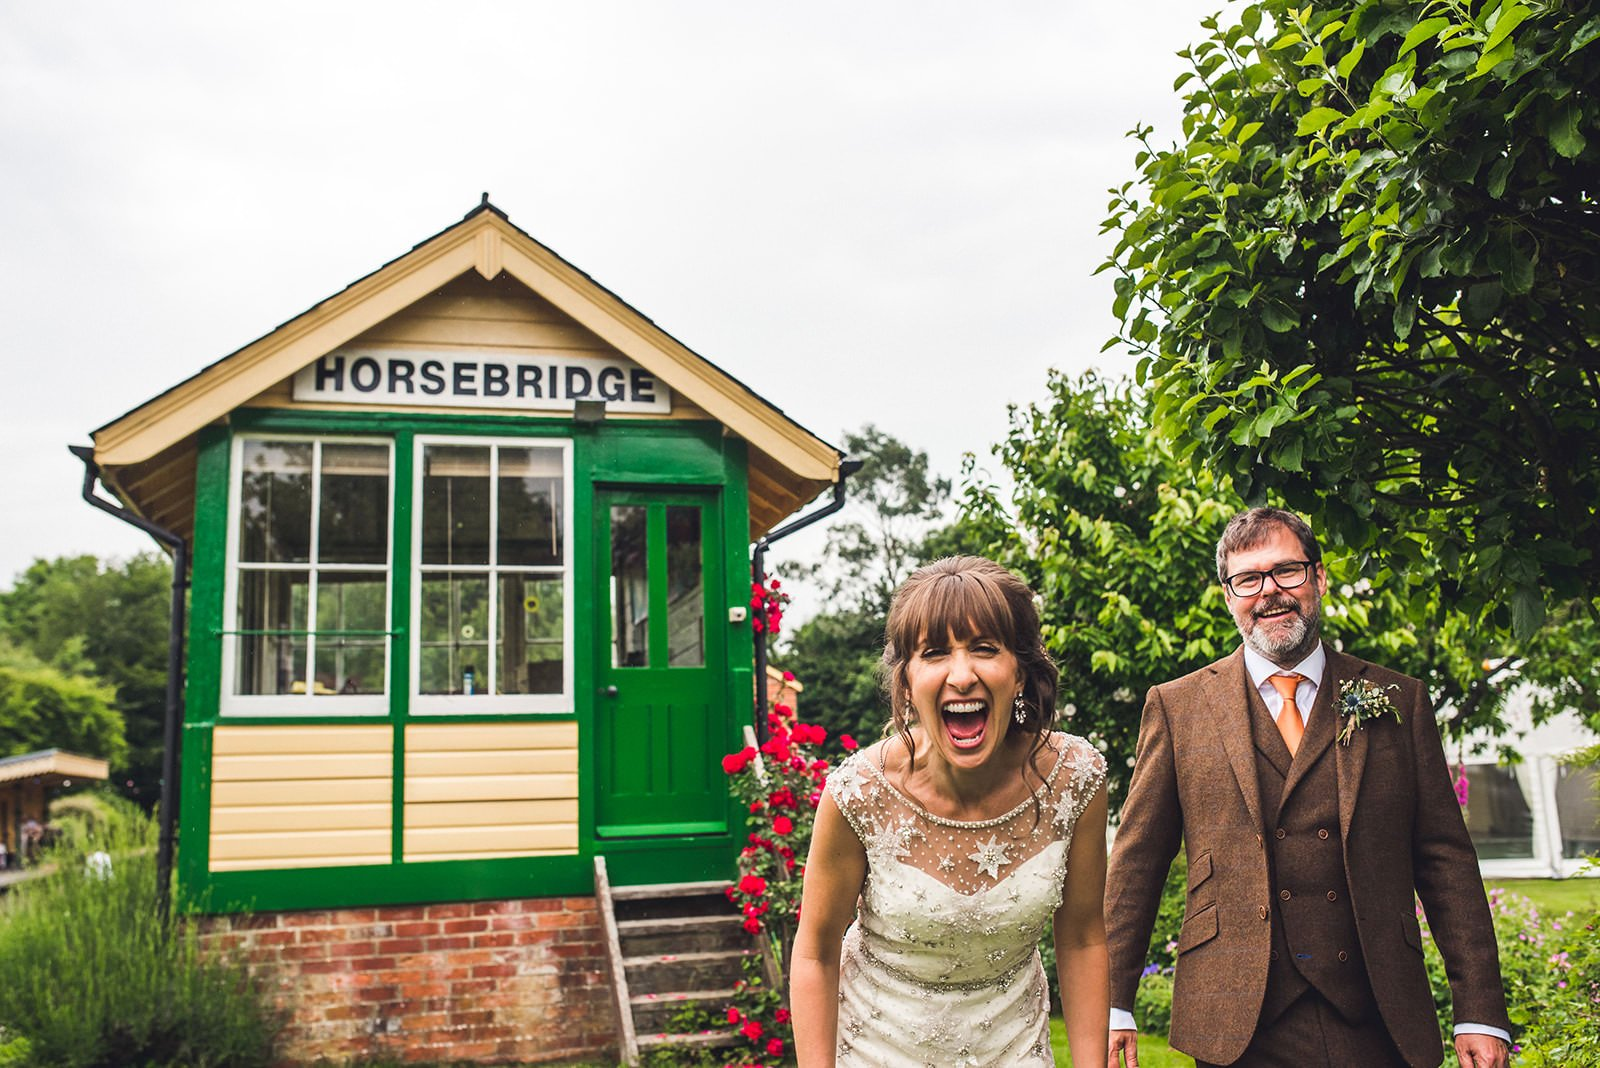 Wedding photography Horsebridge Station bride and groom